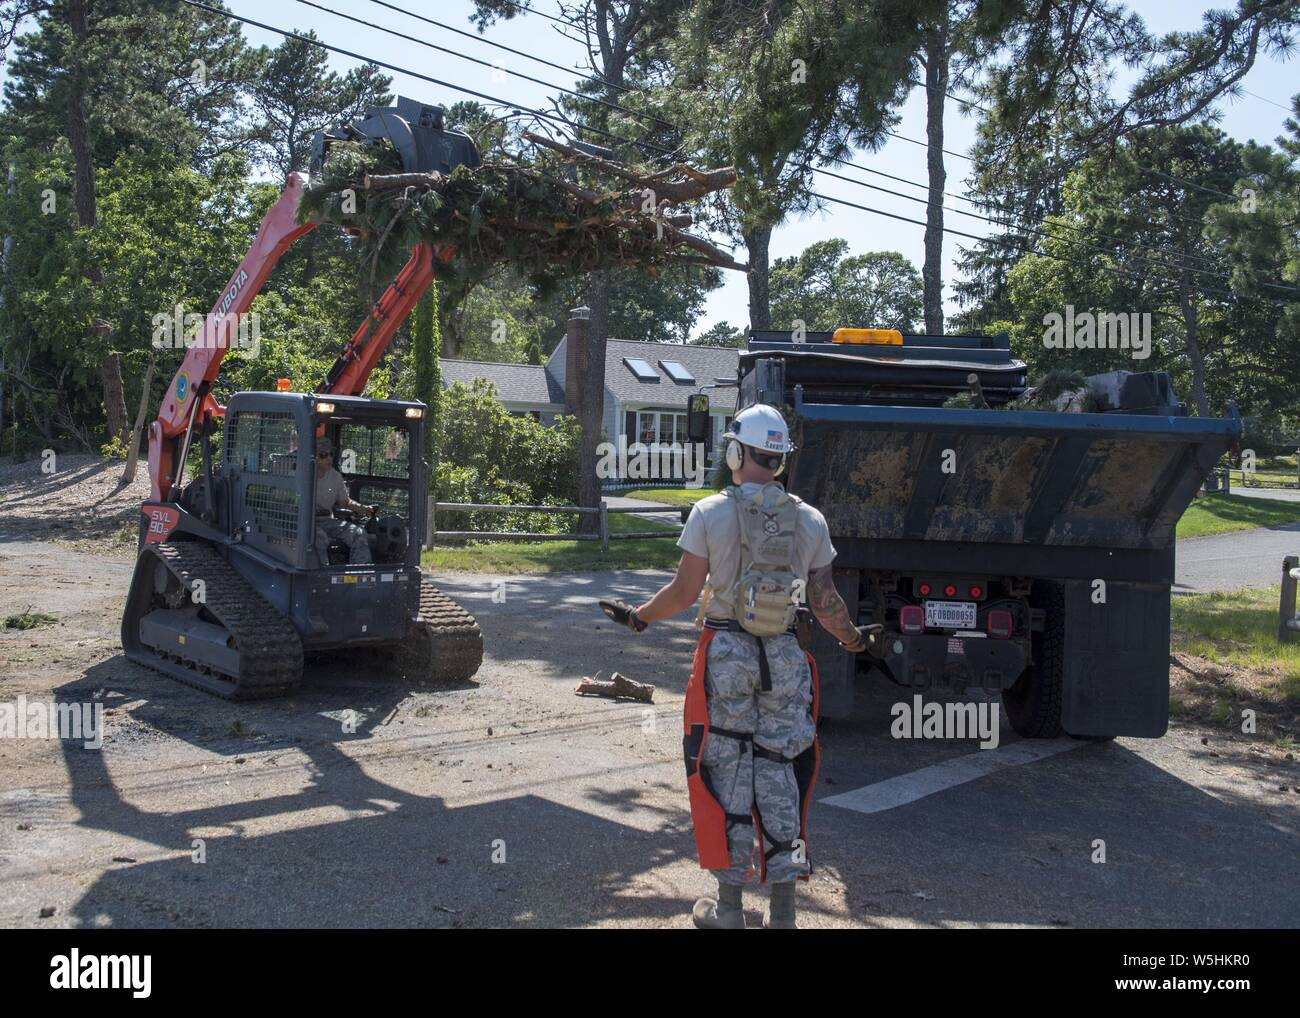 Airmen from the Massachusetts Air National Guard's 102nd Civil Engineer Squadron mobilized to support recovery efforts in the wake of two tornadoes that touched down on Cape Cod on July 23, 2019, July 25, 2019. The Airmen cleared fallen trees and debris from roadways in the towns of Dennis and Harwich Massachusetts. Image courtesy Tech. Sgt. Thomas Swanson/102nd Intelligence Wing. () Stock Photo